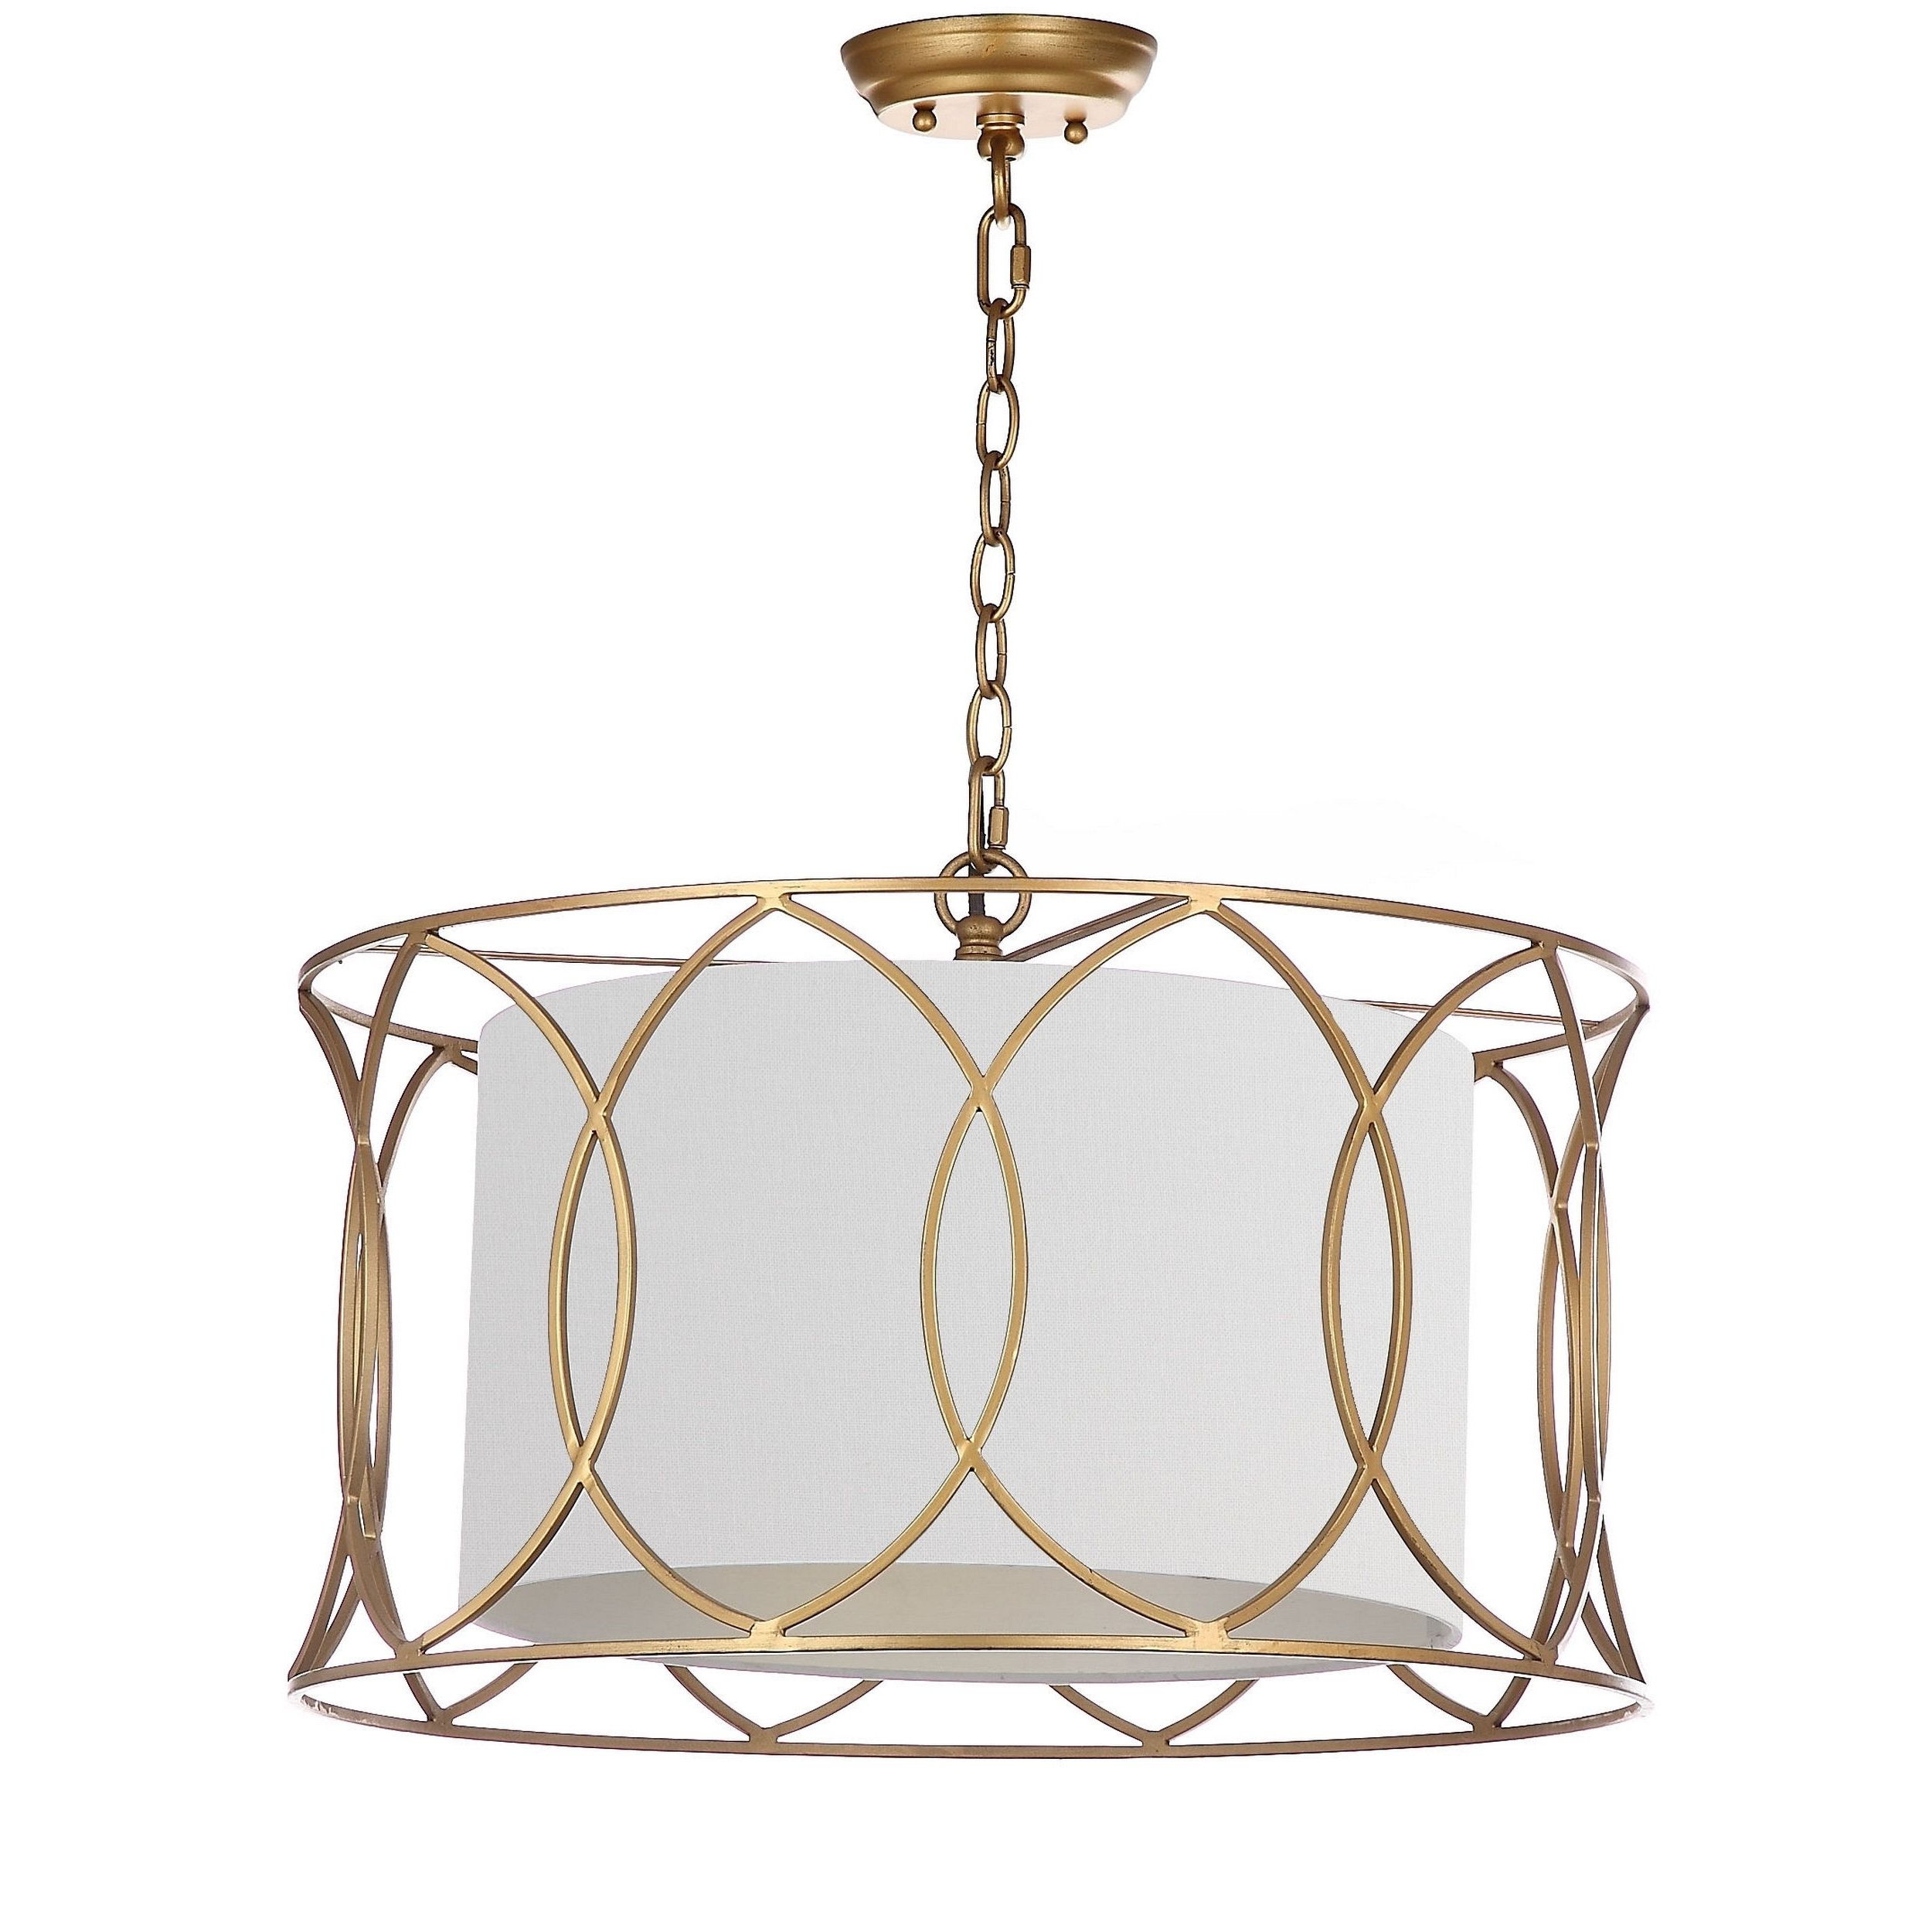 Safavieh Lighting Silas Gold Adjustable Pendant Lamp Intended For Well Liked Balducci 5 Light Pendants (View 3 of 20)